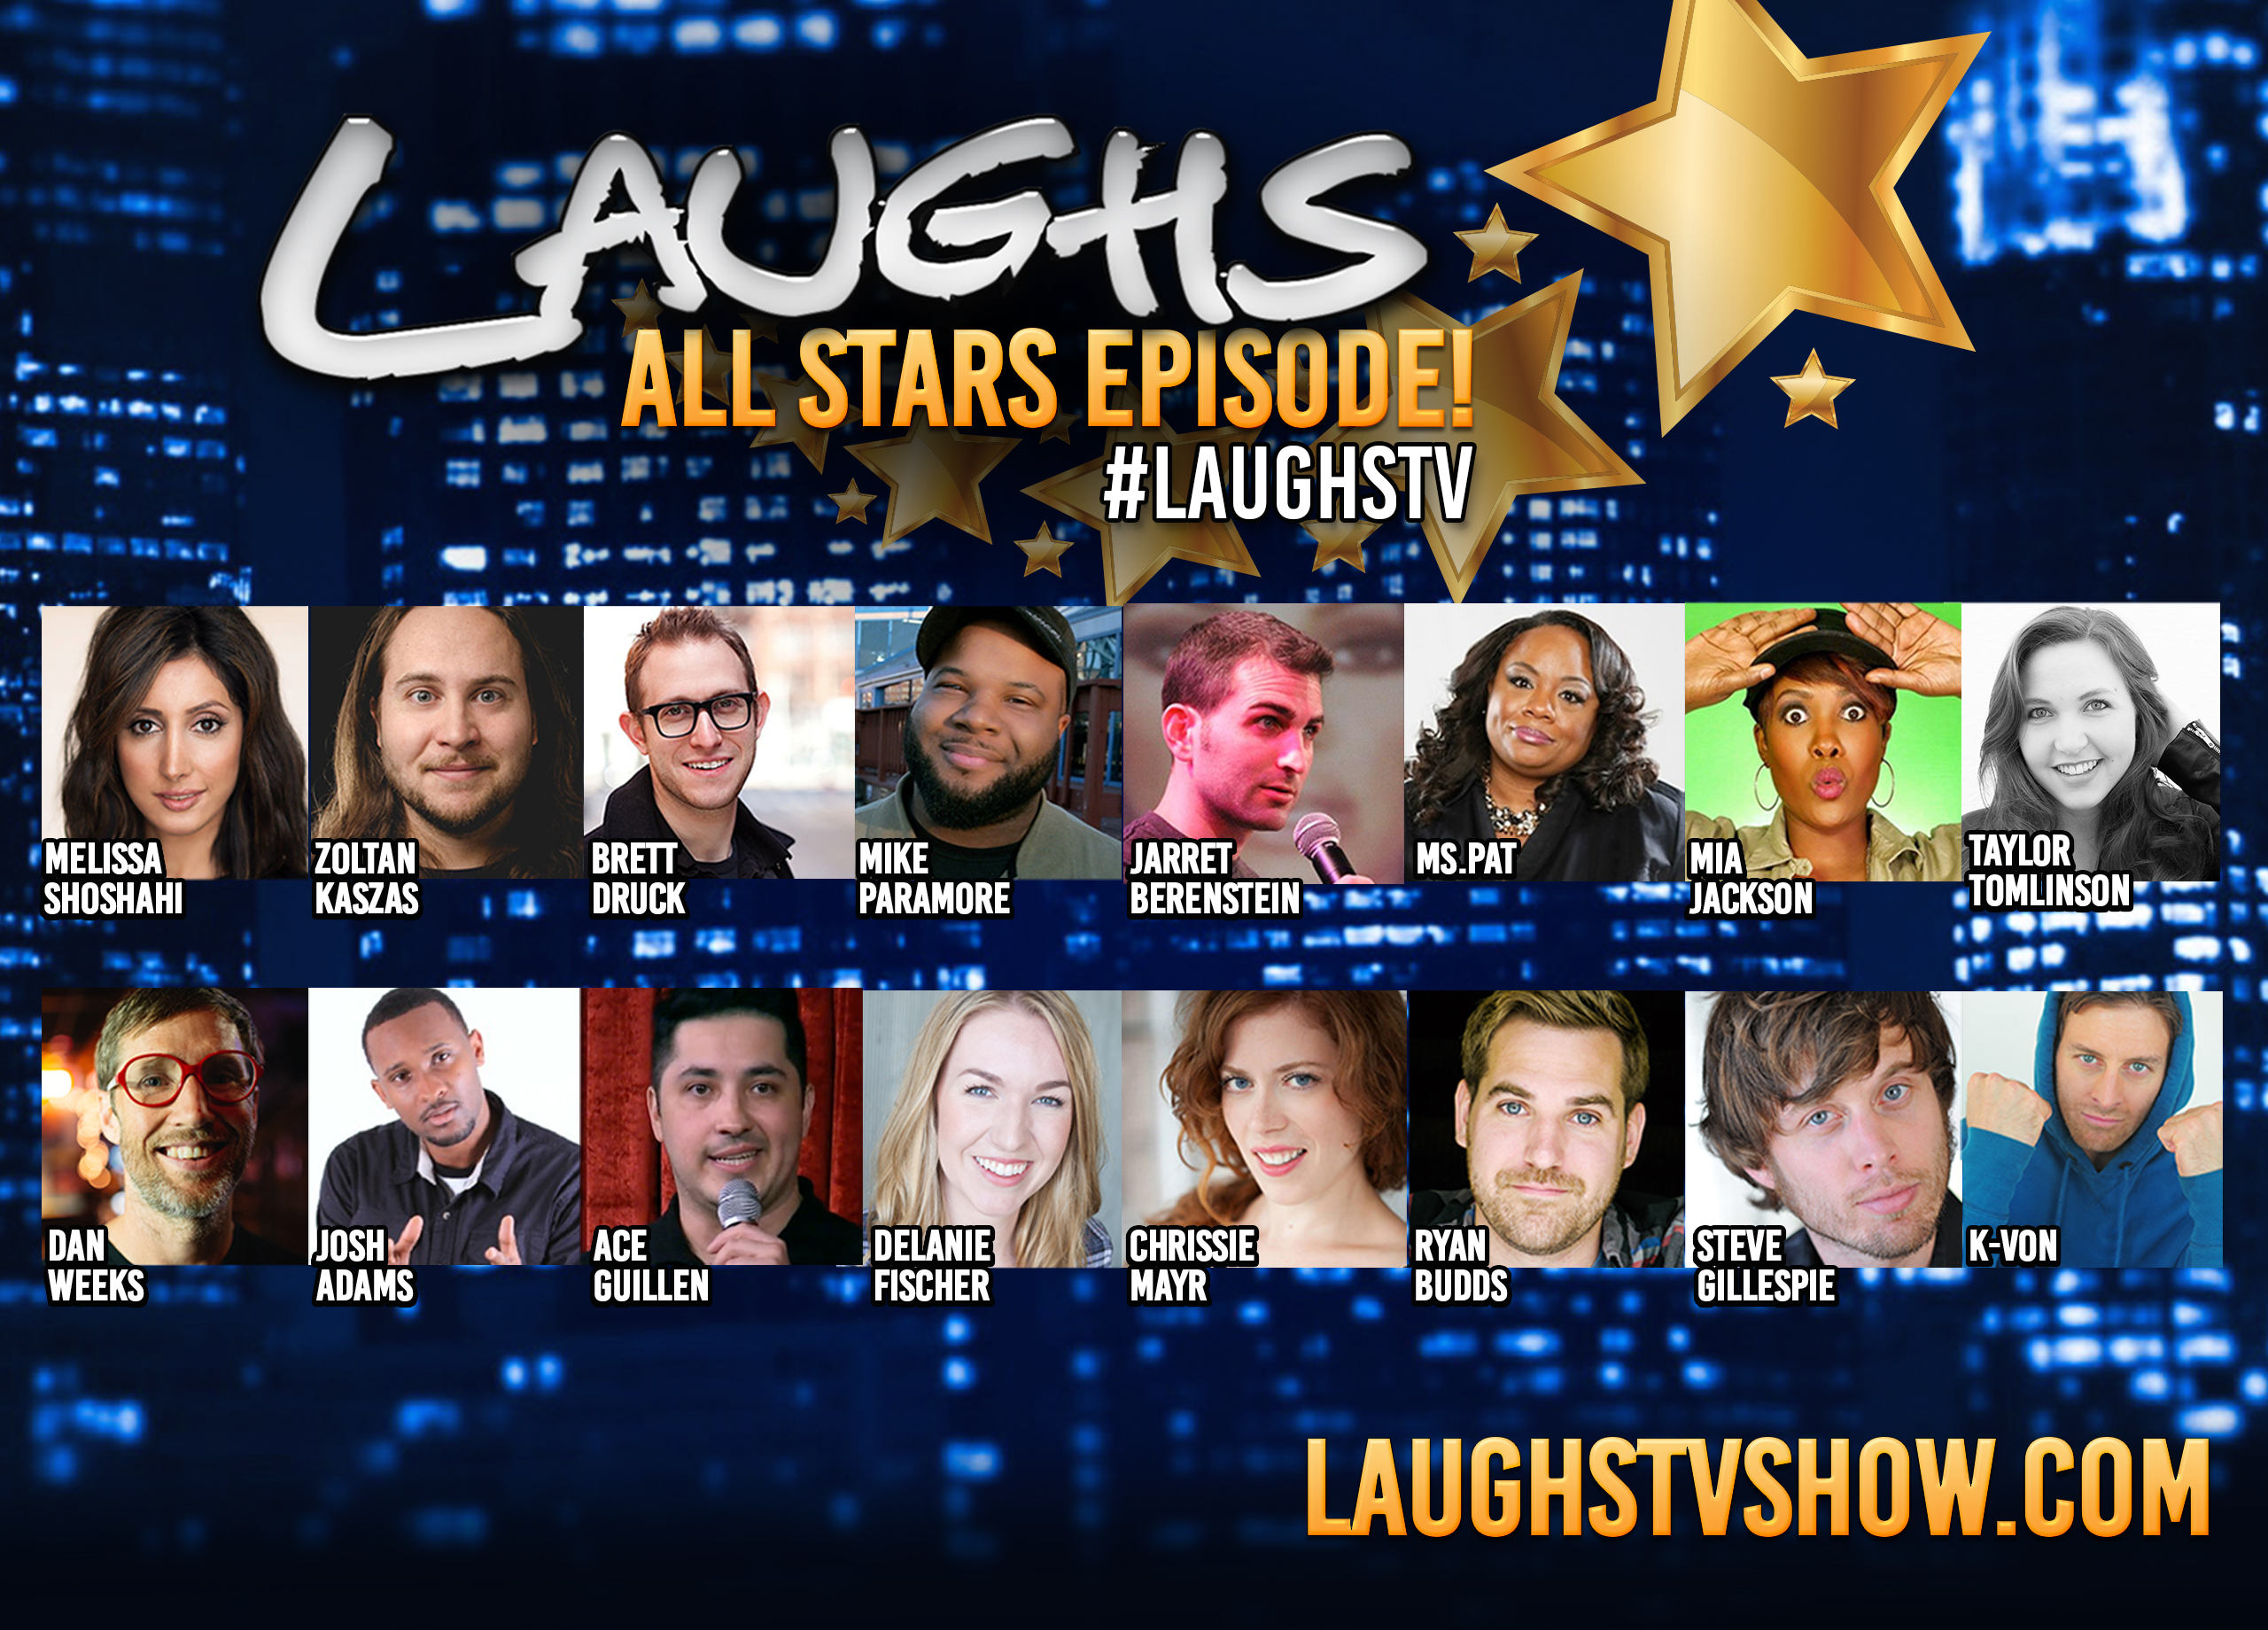 laughs all stars